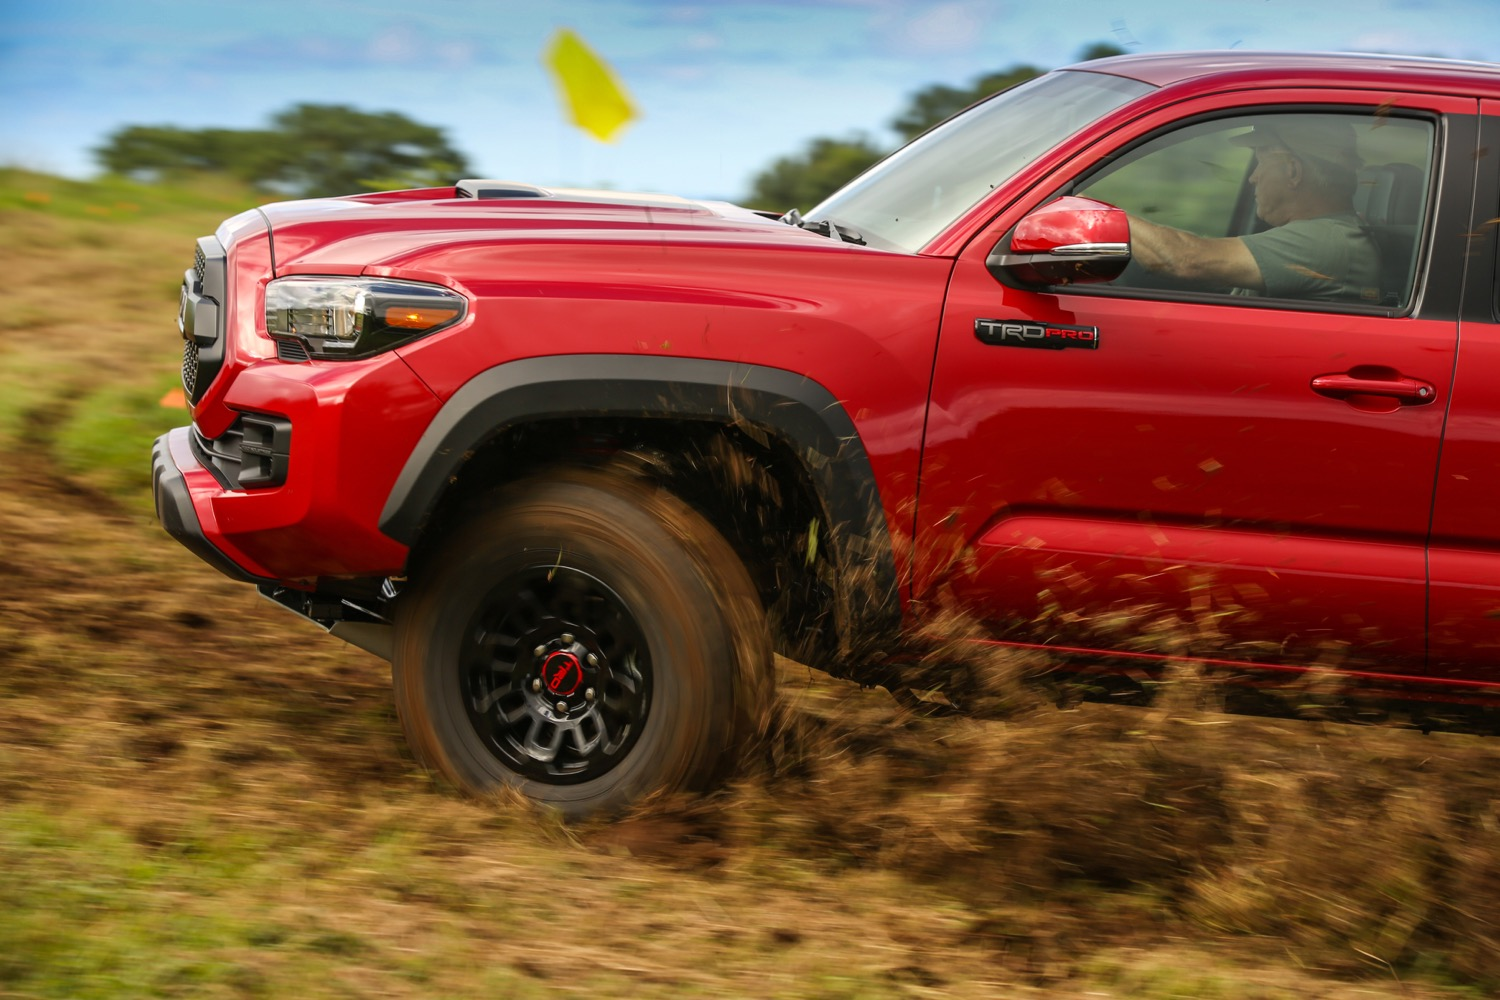 Automatic V6 Tacoma Models Get An EPA Rated 21 Mpg Combined (19 Mpg City,  24 Mpg Highway) With Rear Wheel Drive, And 20 Mpg Combined (18 Mpg City, ...